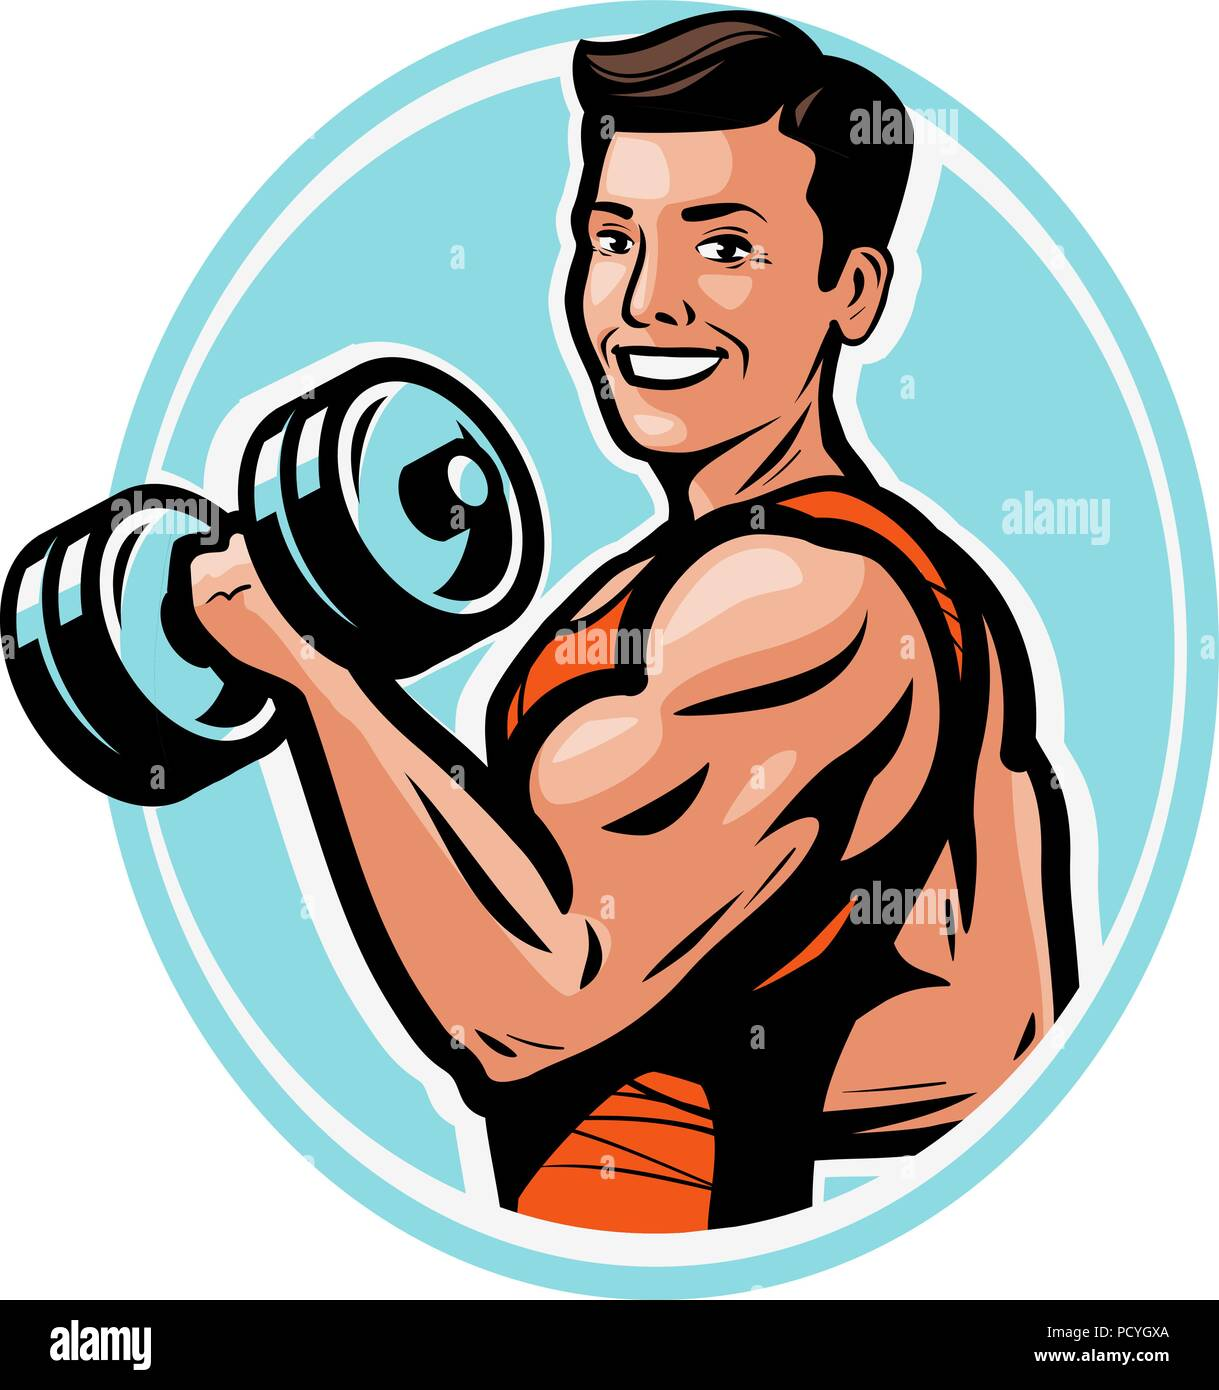 Strong Athletic Man Raises Heavy Dumbbells With His Hands Gym Body Building Concept Vector Illustration Stock Vector Image Art Alamy